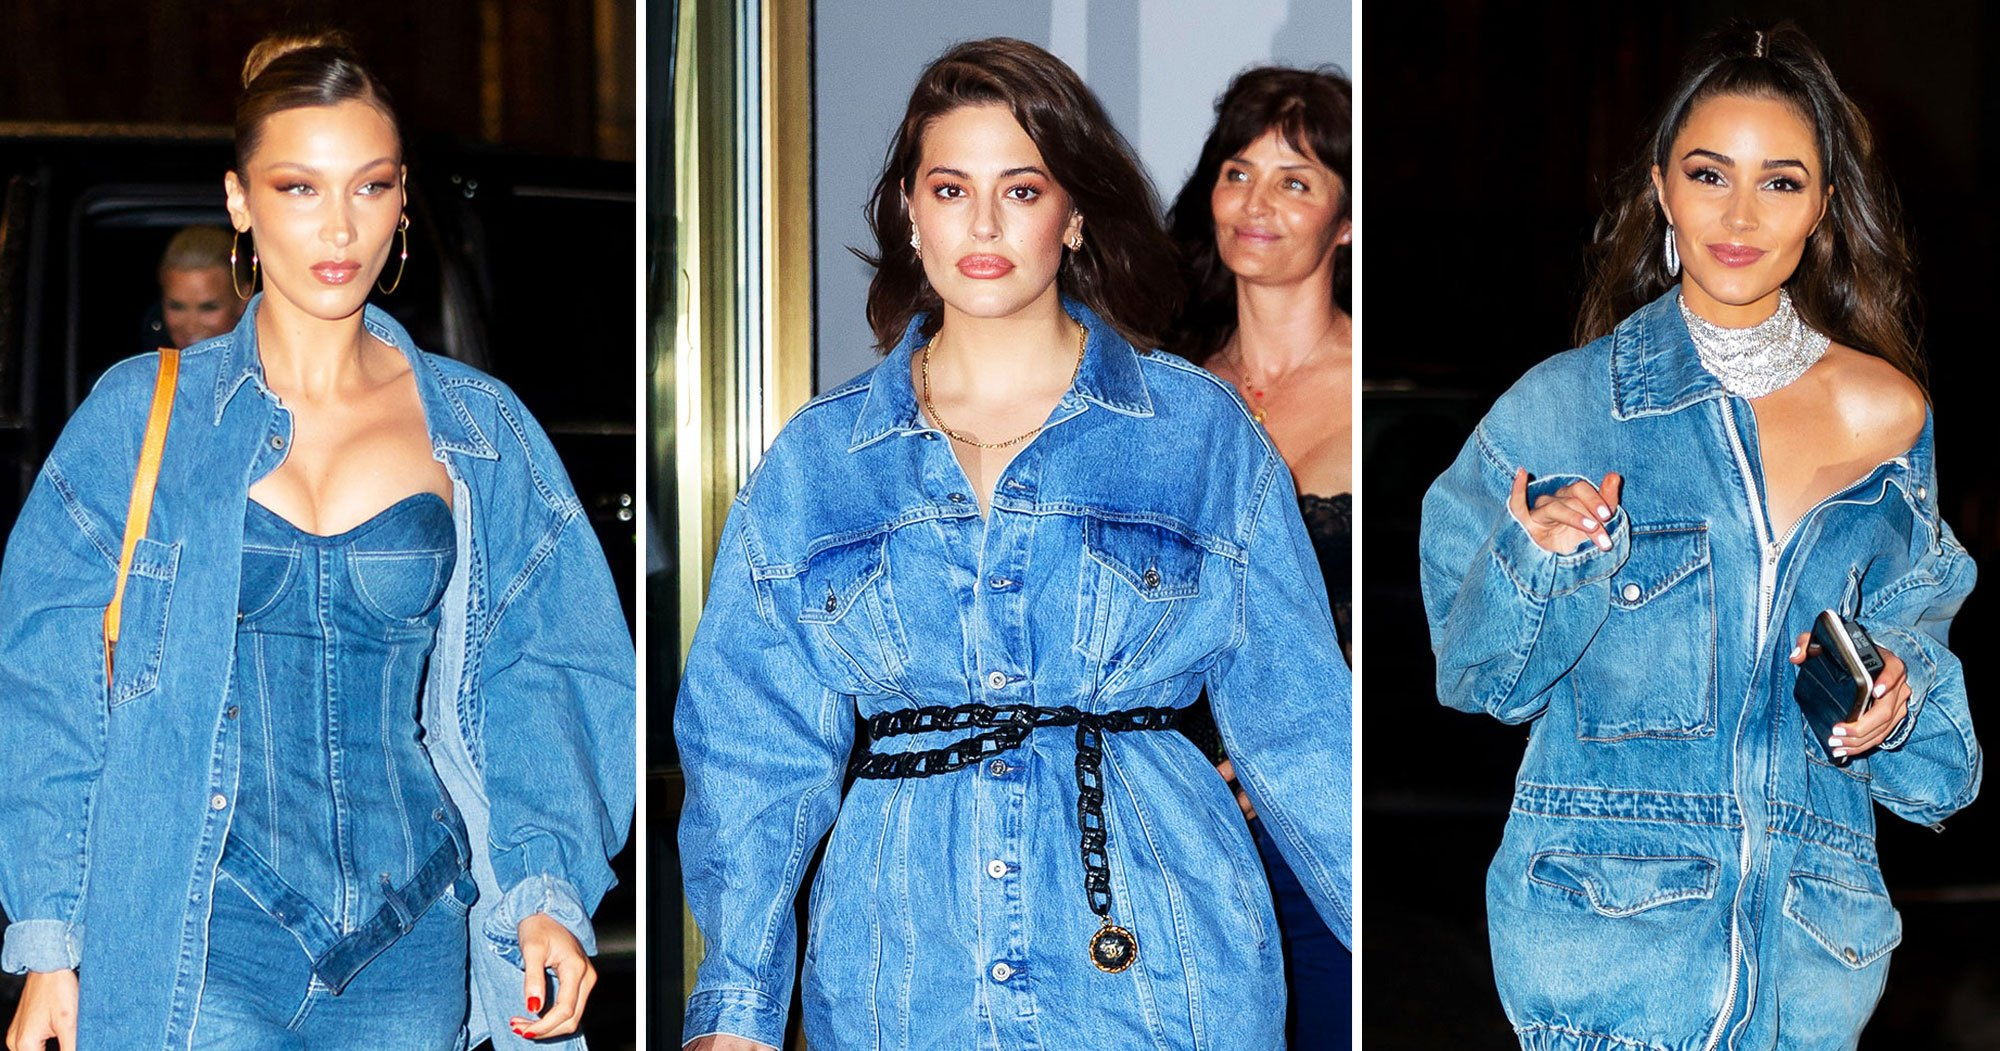 Gigi Hadid's Famous Friends and Family Celebrated Her Birthday in Denim— See Our Favorite Jean Looks